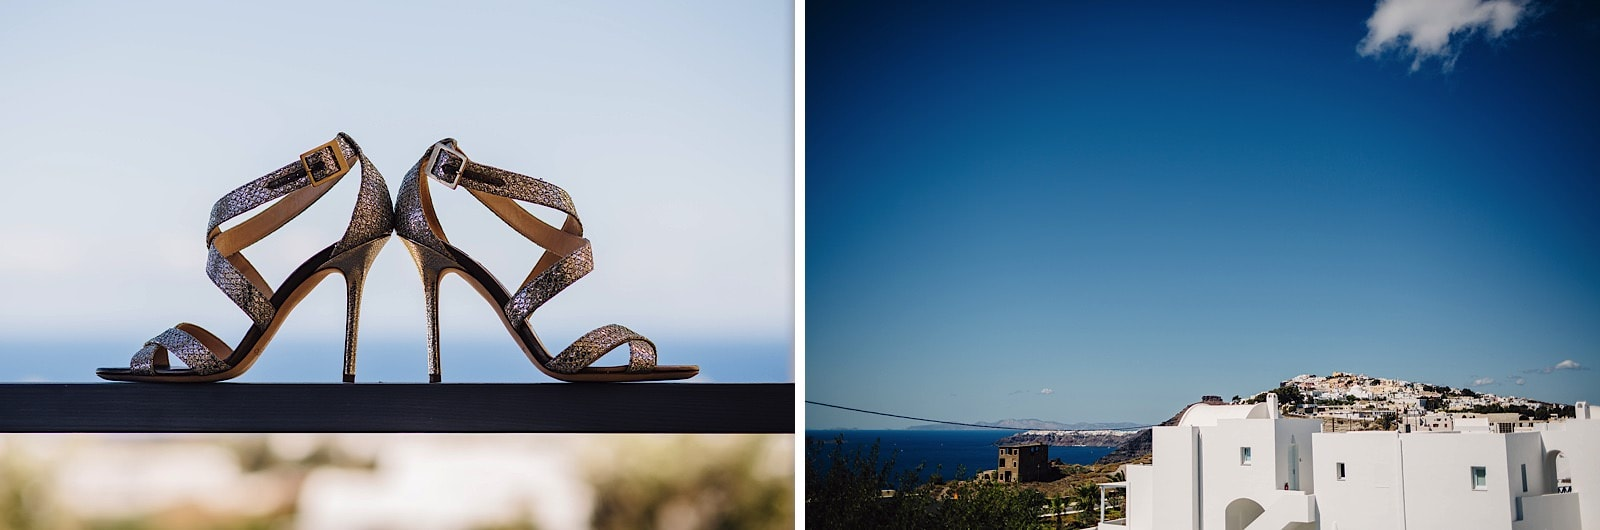 santorini-wedding-photographer-0002